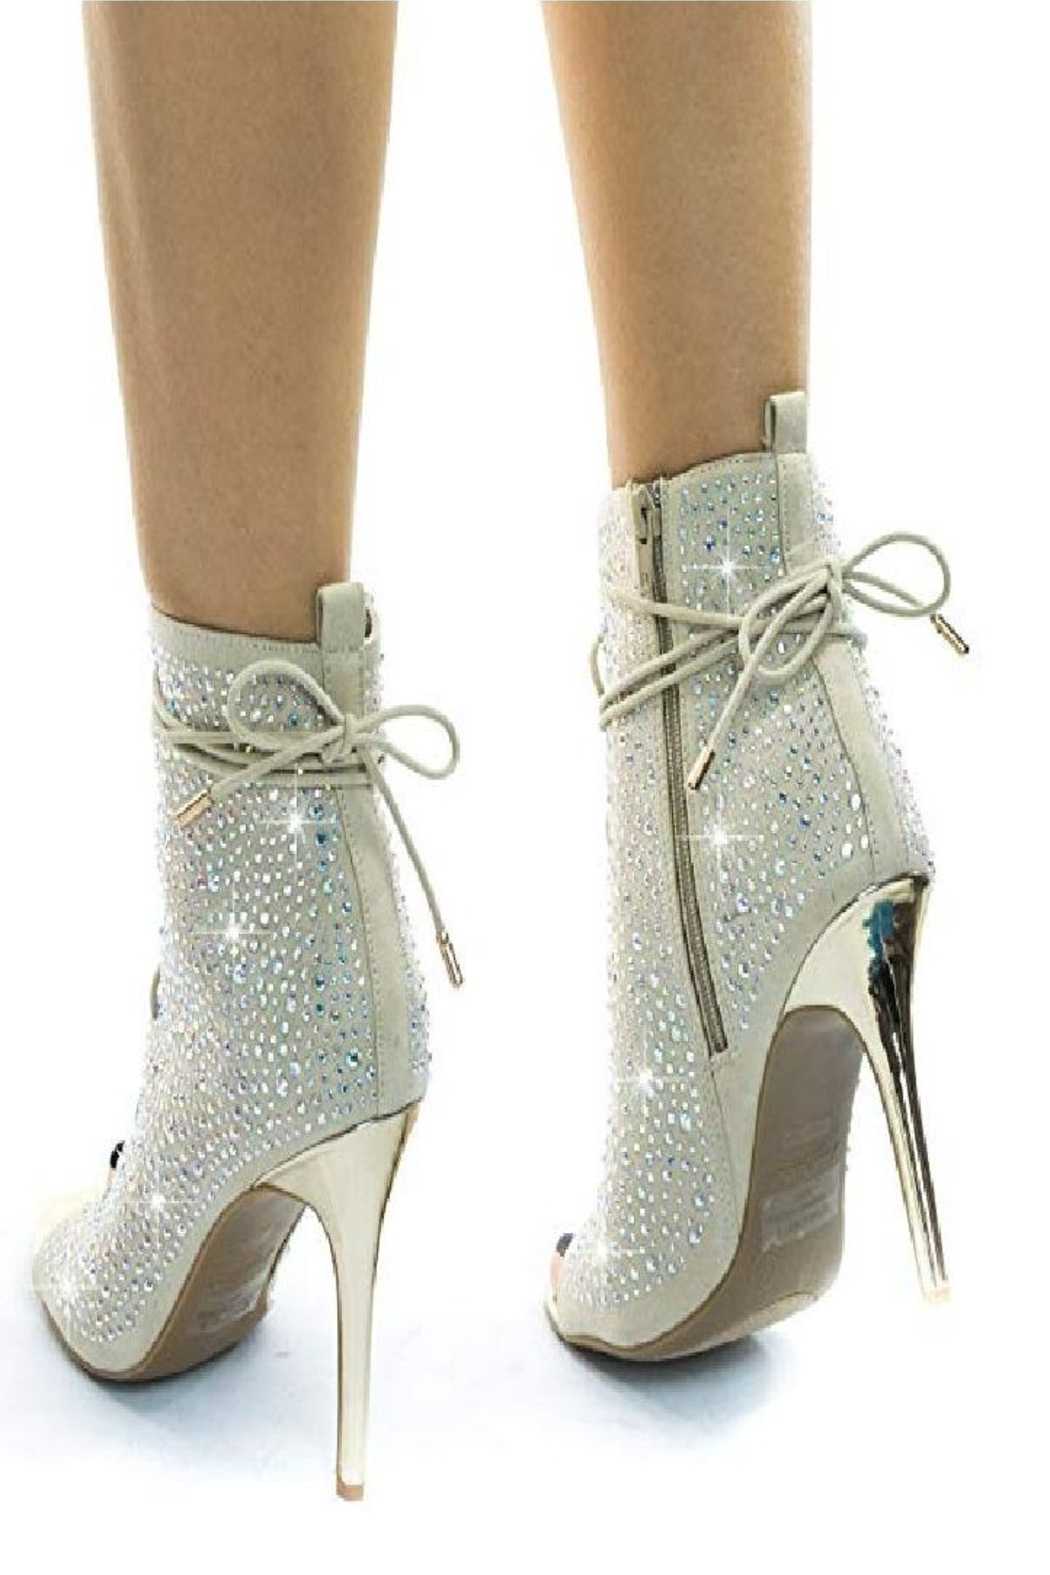 anne michelle Anne Michelle Royals-58s Rhinestone High Heel Silver - Back Cropped Image